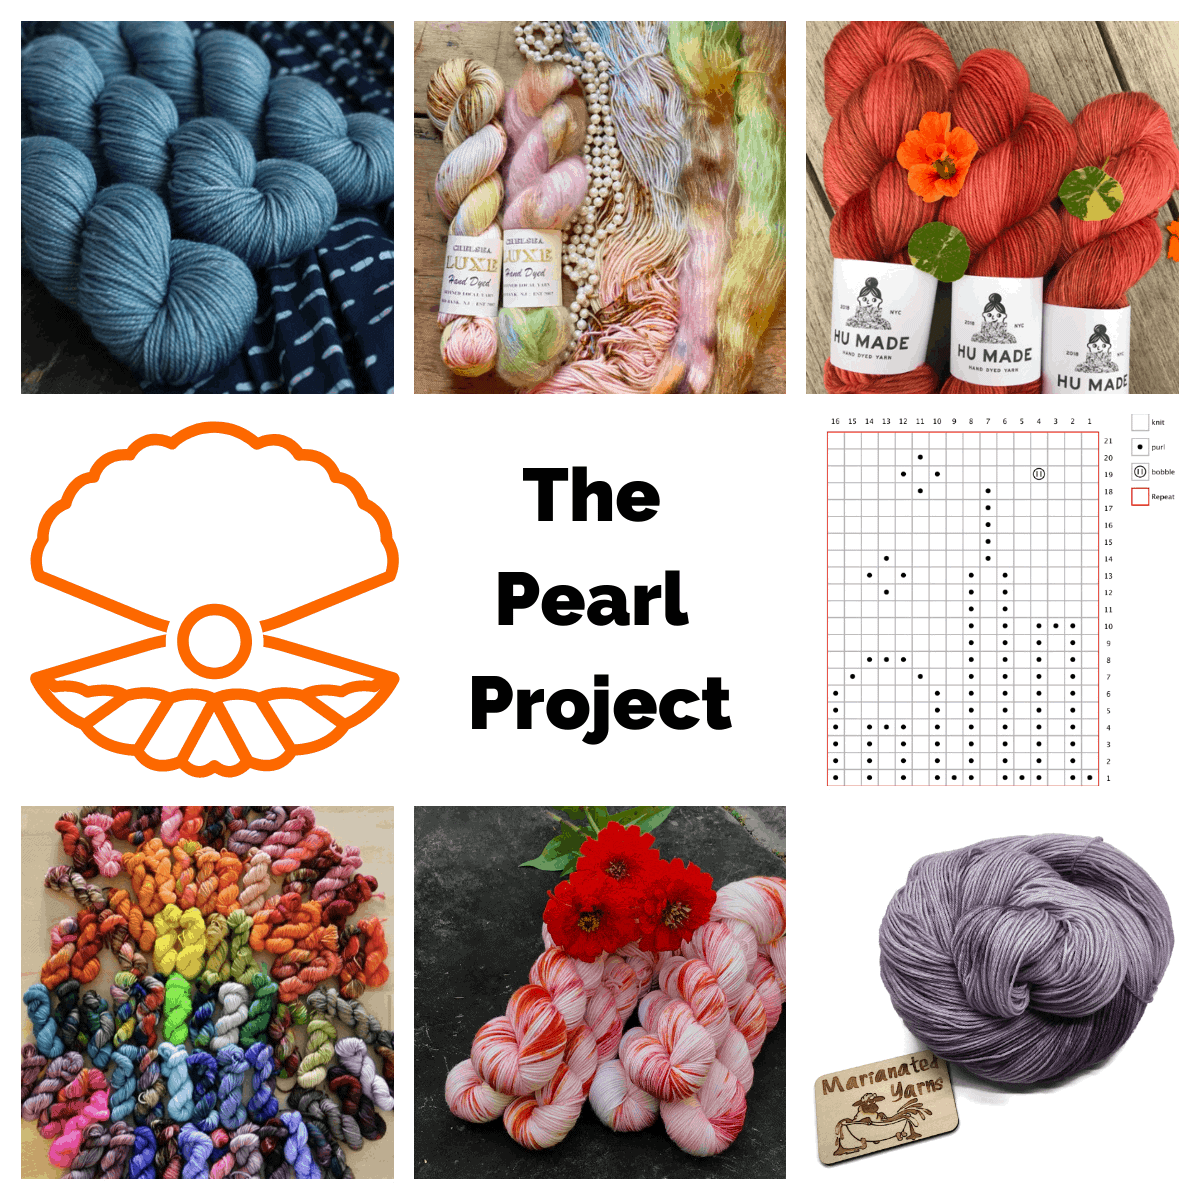 A collage of colorful yarn and an orange oyster with a pearl.